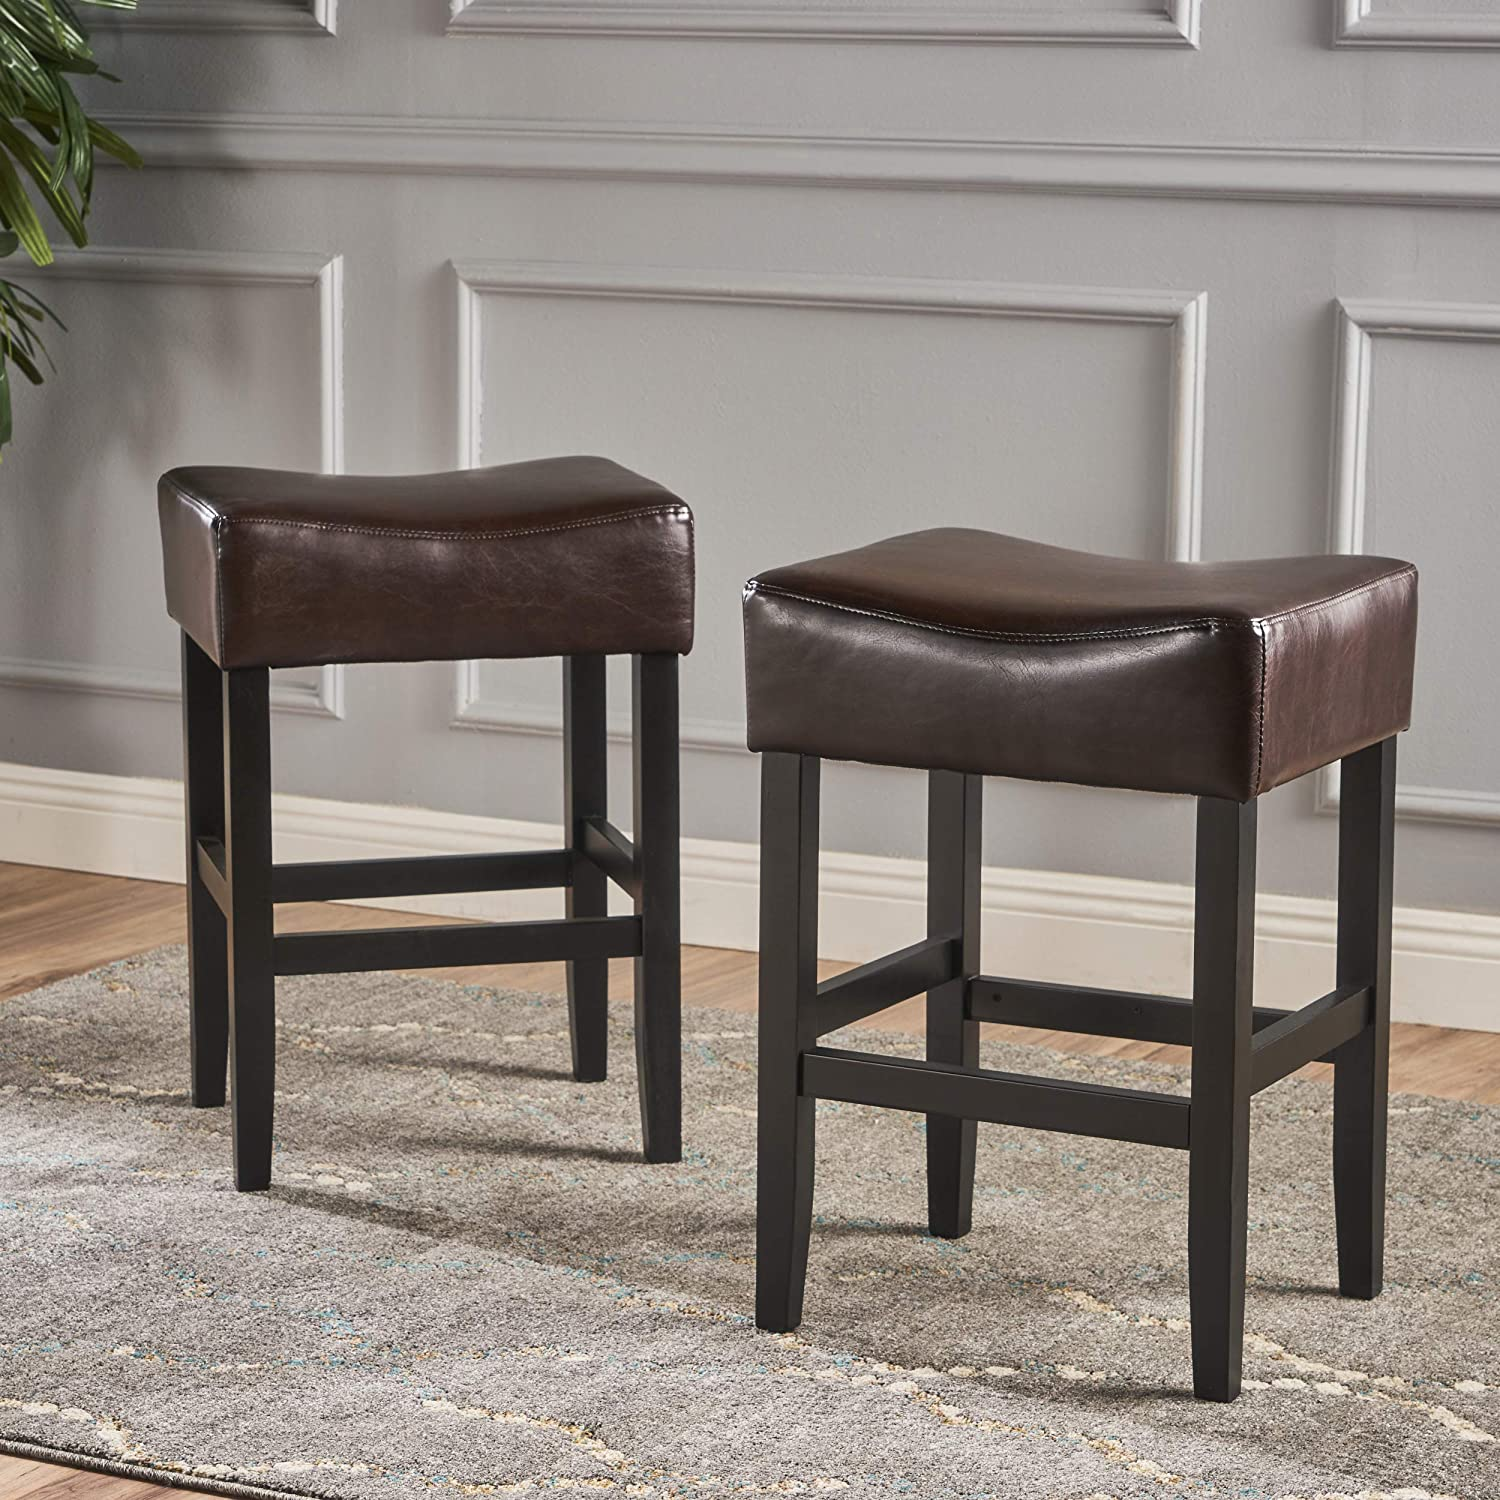 Christopher Knight Home 295961 Adler Set of 2 Brown Leather Backless Counter Stool,